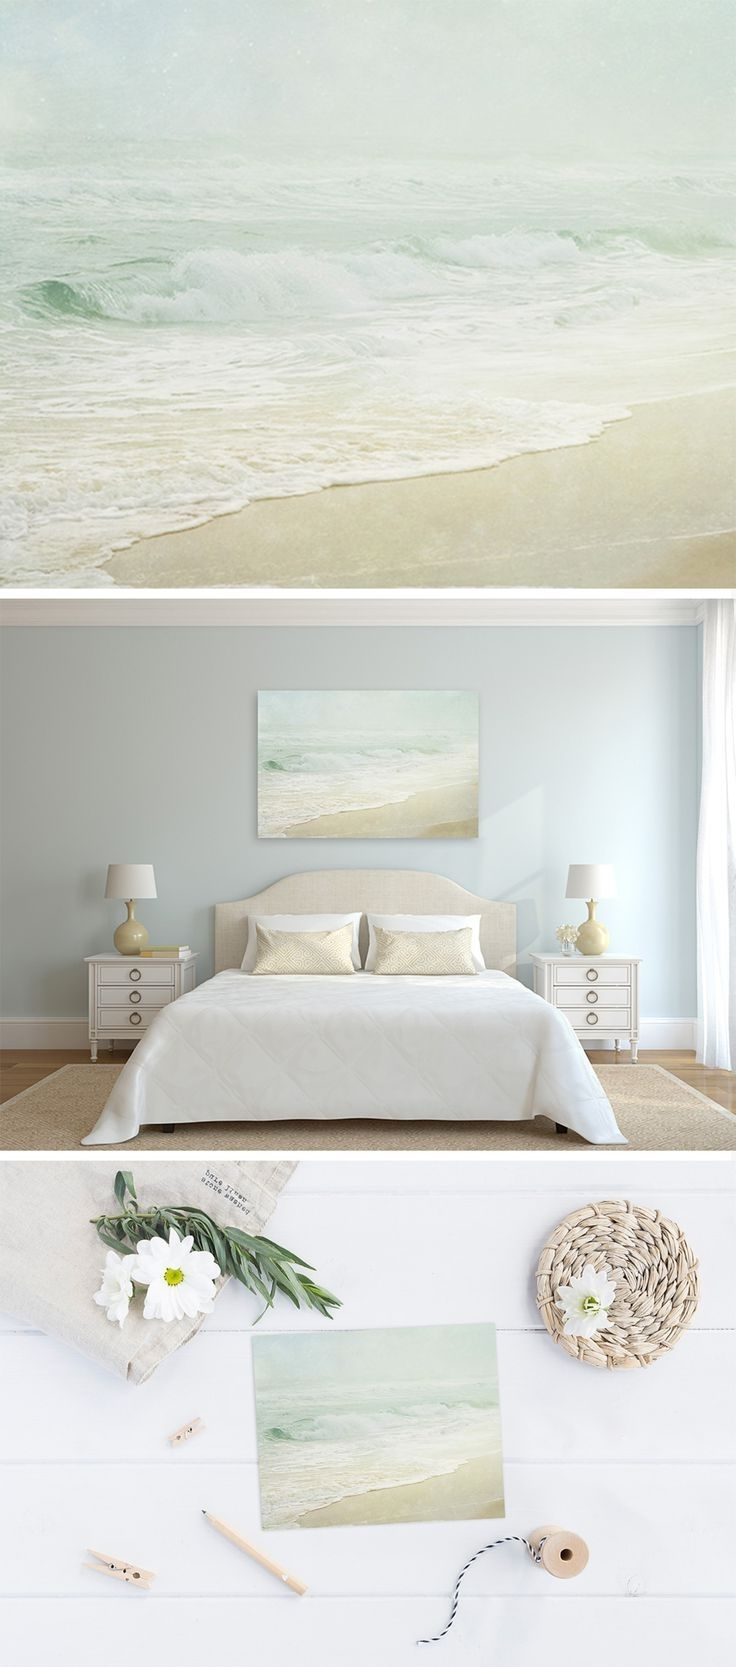 Well Known Foggy Beach – Coastal Wall Art For Your Beach Cottage Decor (View 14 of 15)